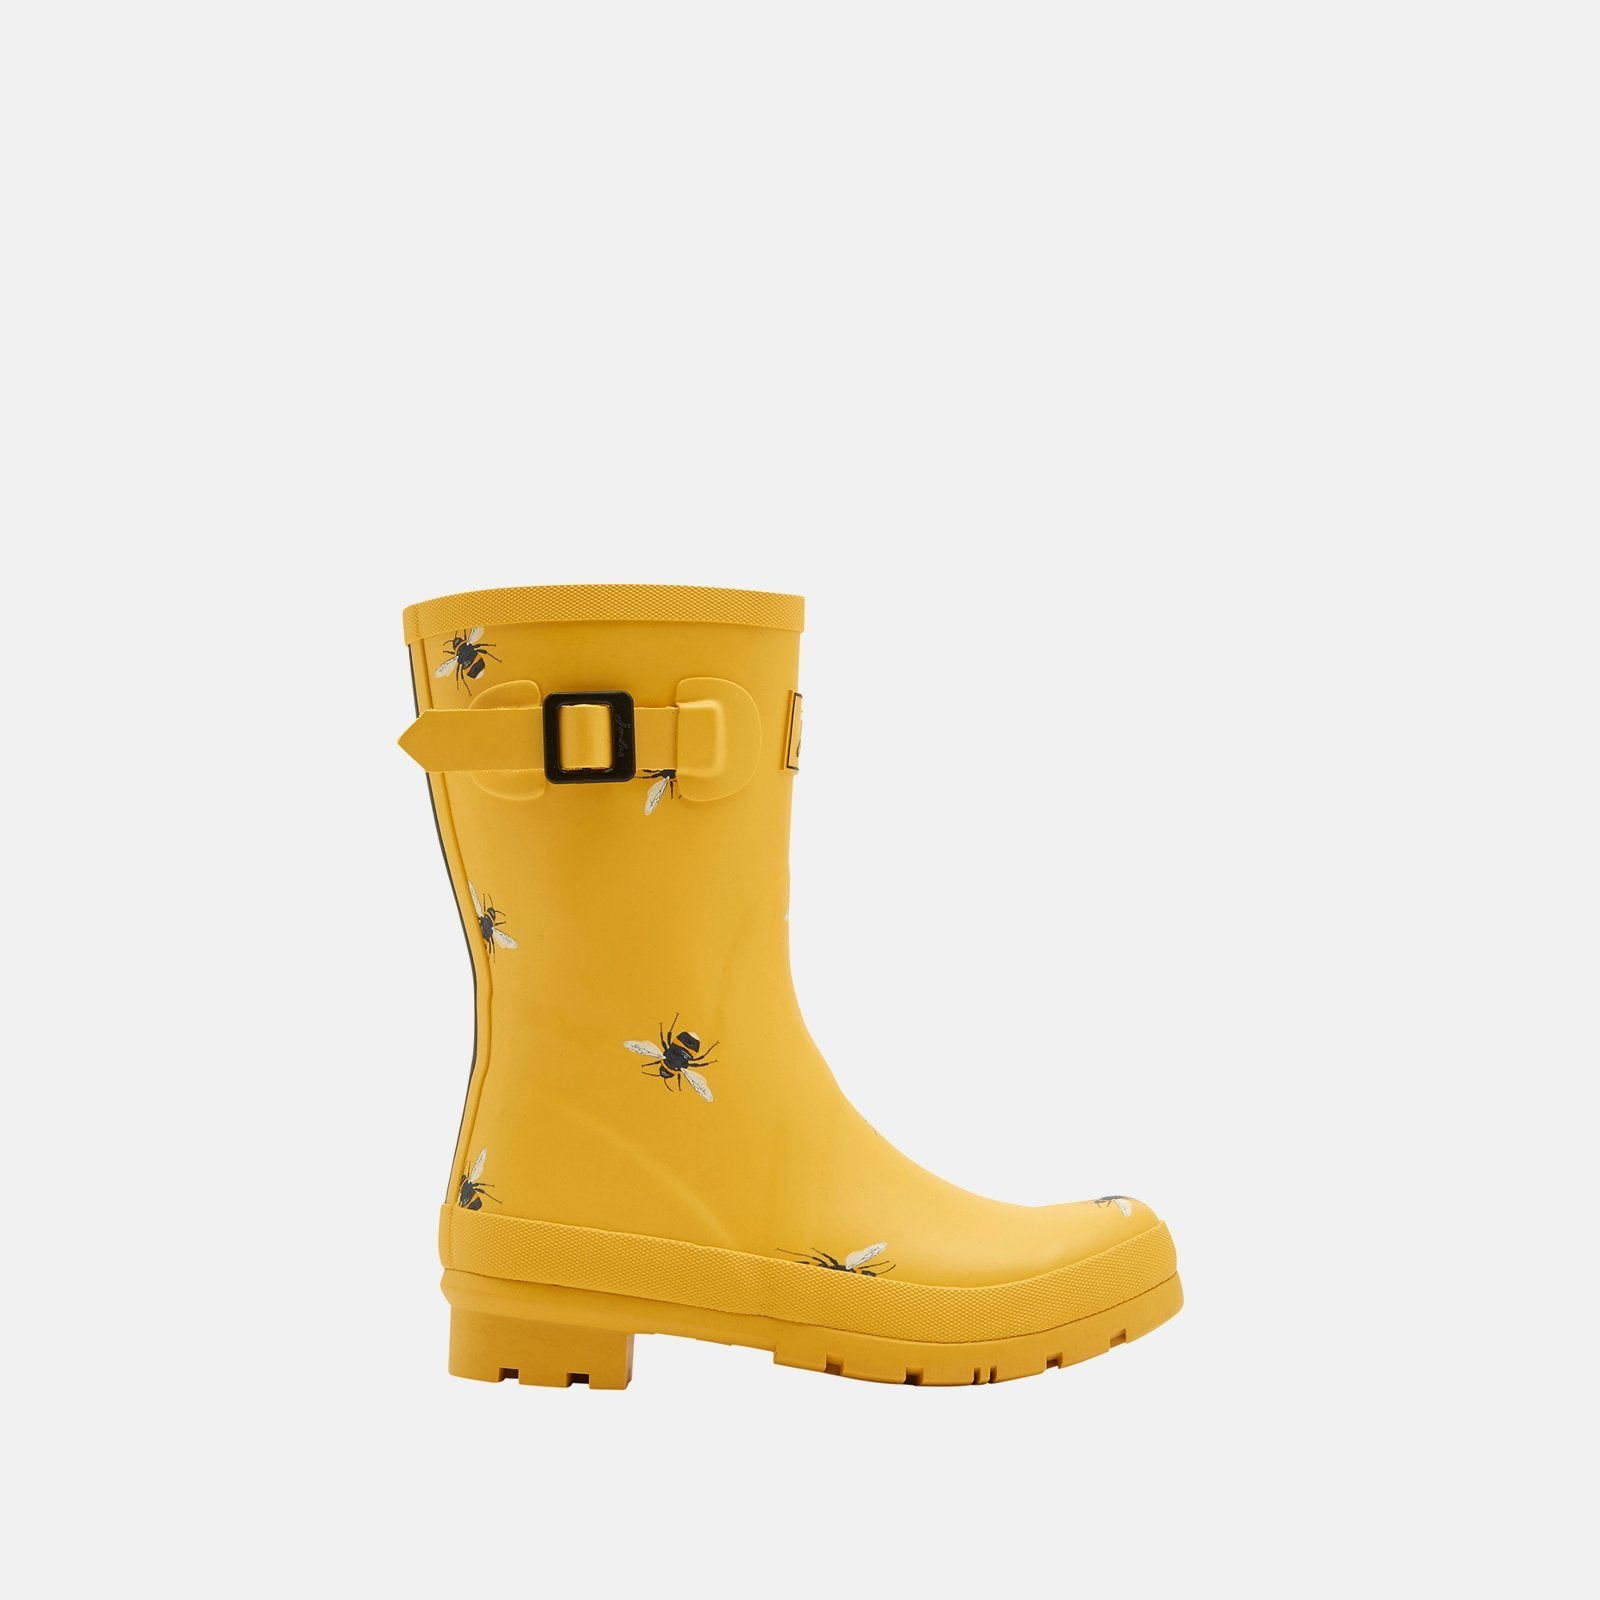 – Shoes Womens Bells W Wellies Joules Tagged 8NnwXPOk0